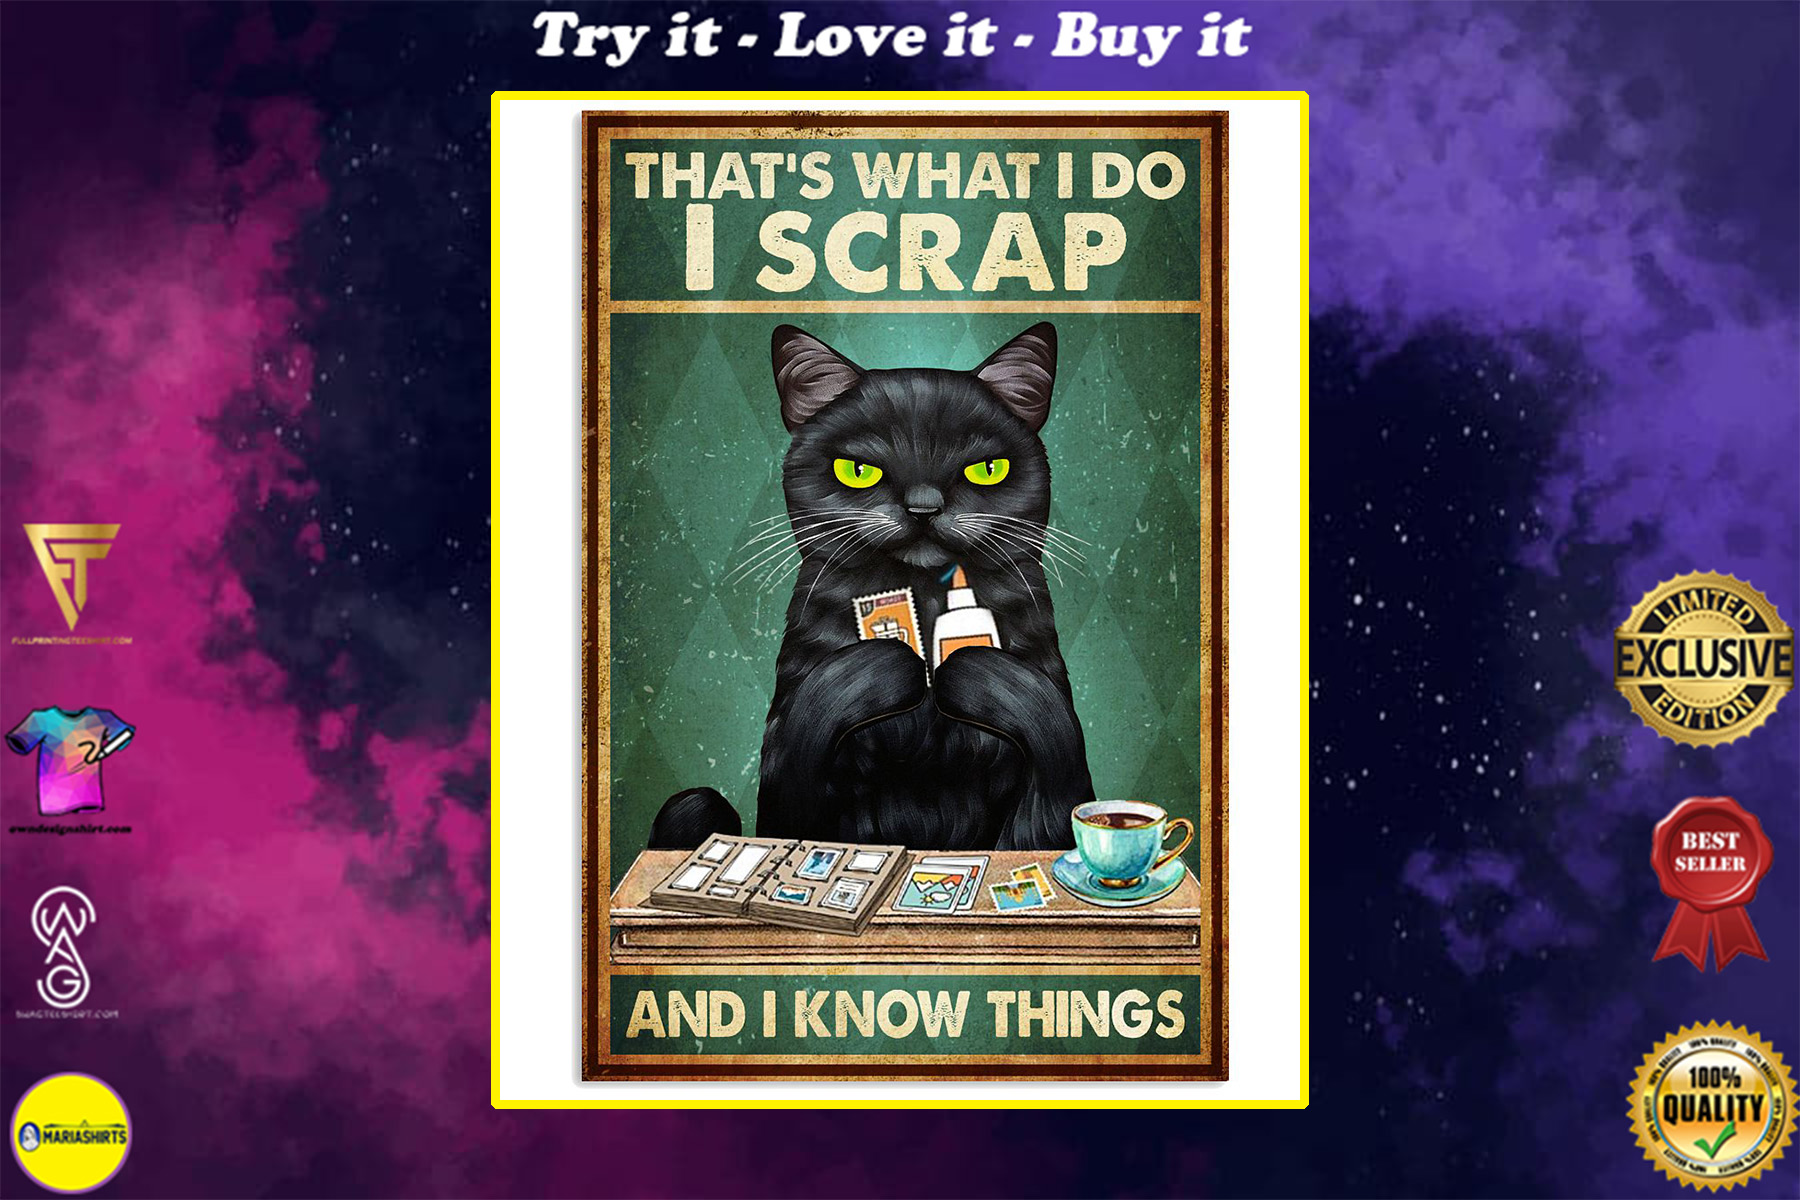 vintage cat thats what i do i scrap and i know things poster